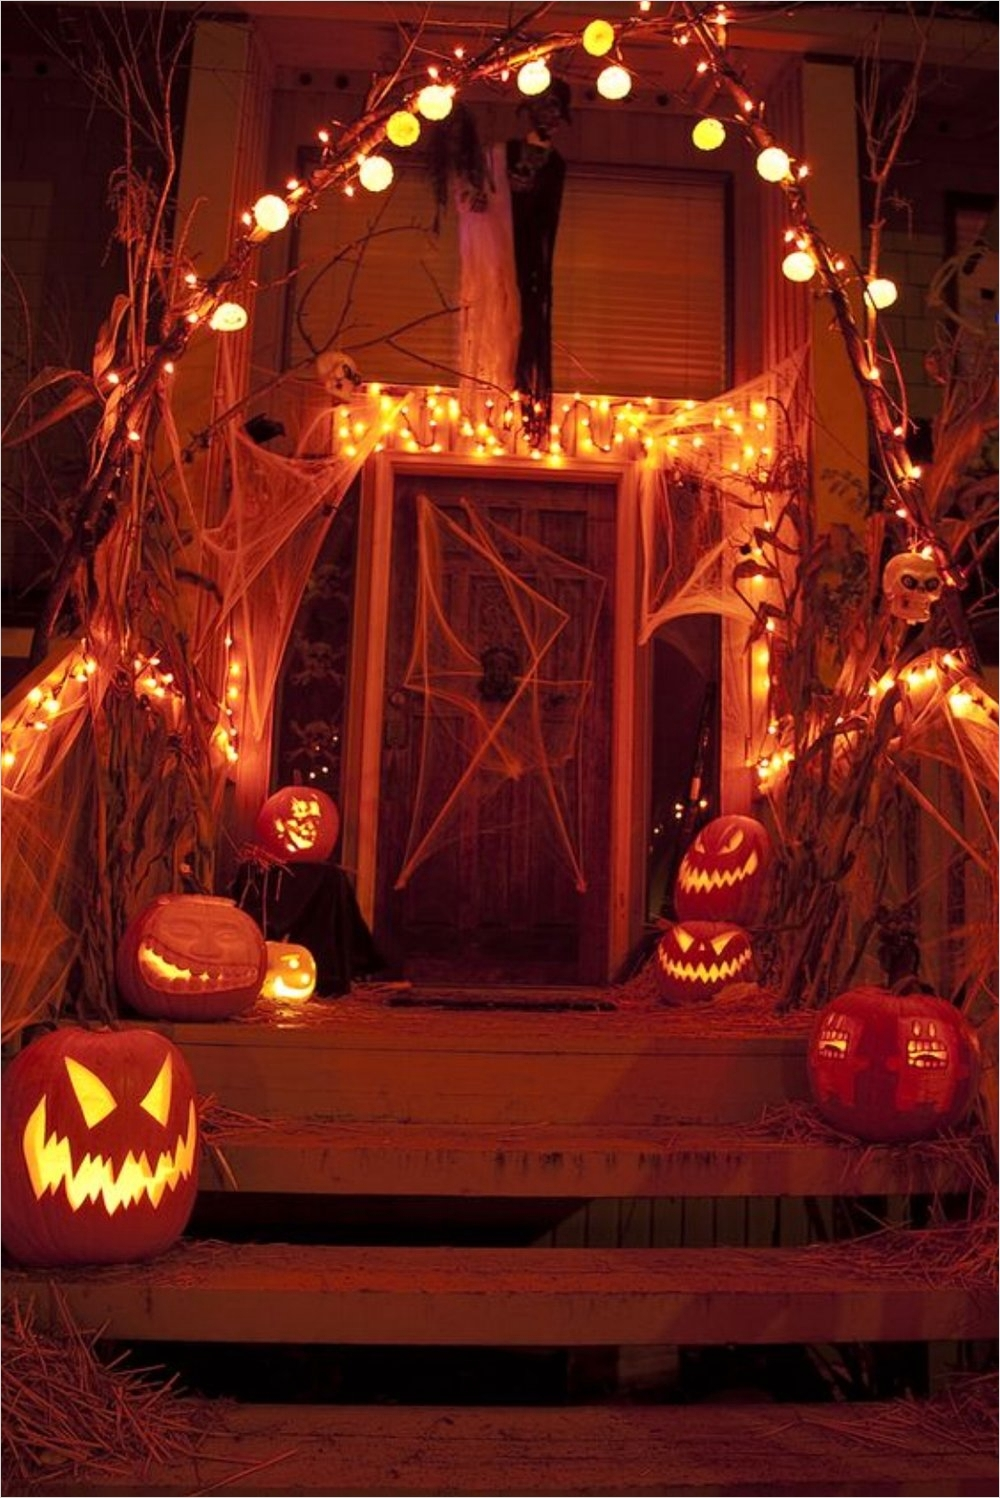 42 Cute Halloween Decoration Ideas 31 46 top Halloween Decoration Inspirations This Year — Style Estate 4